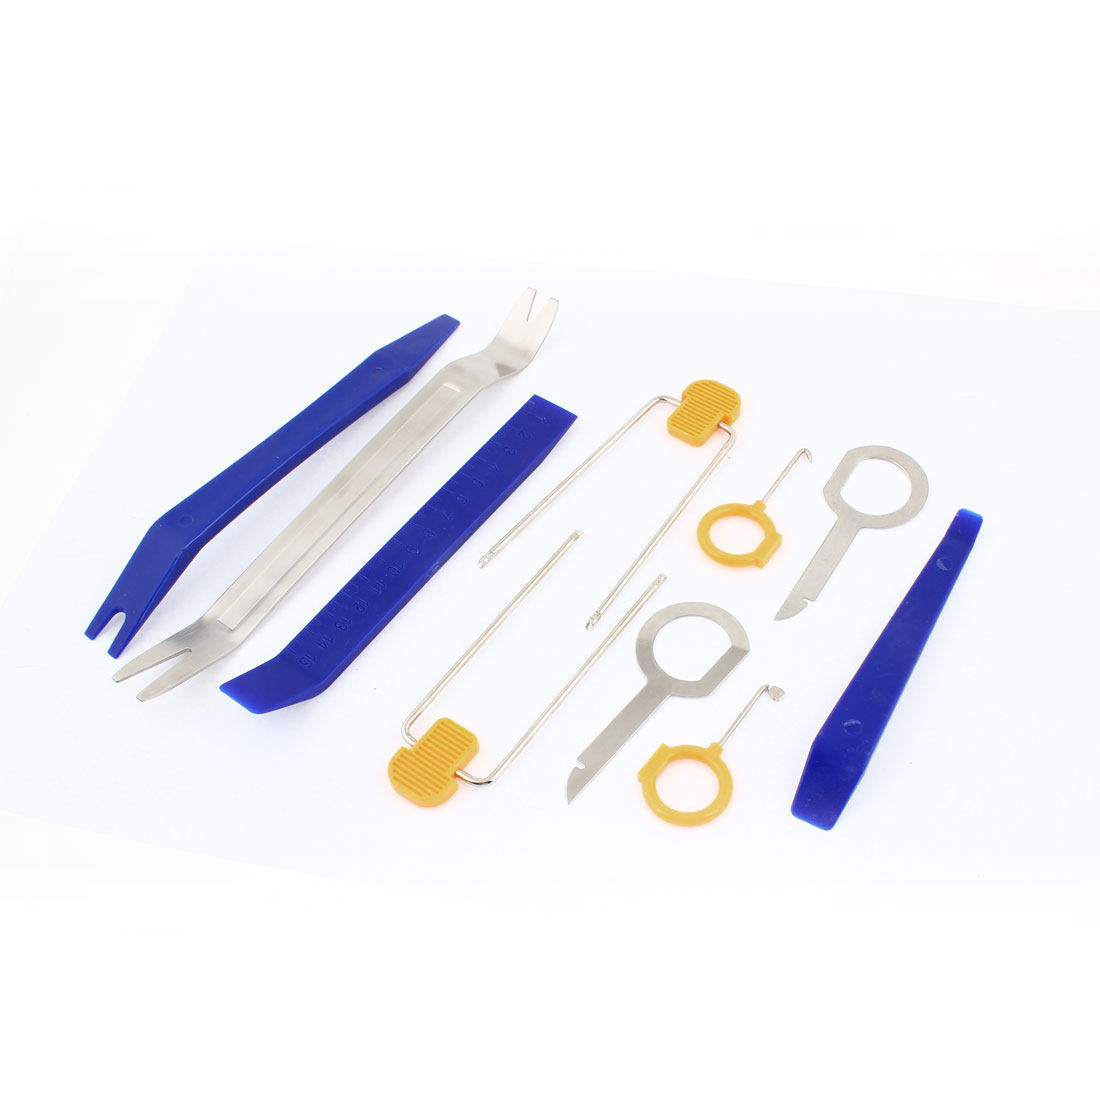 10 Pcs Car Vehicle Door Panel Audio Removal Installer Dismantle Tool Blue Yellow